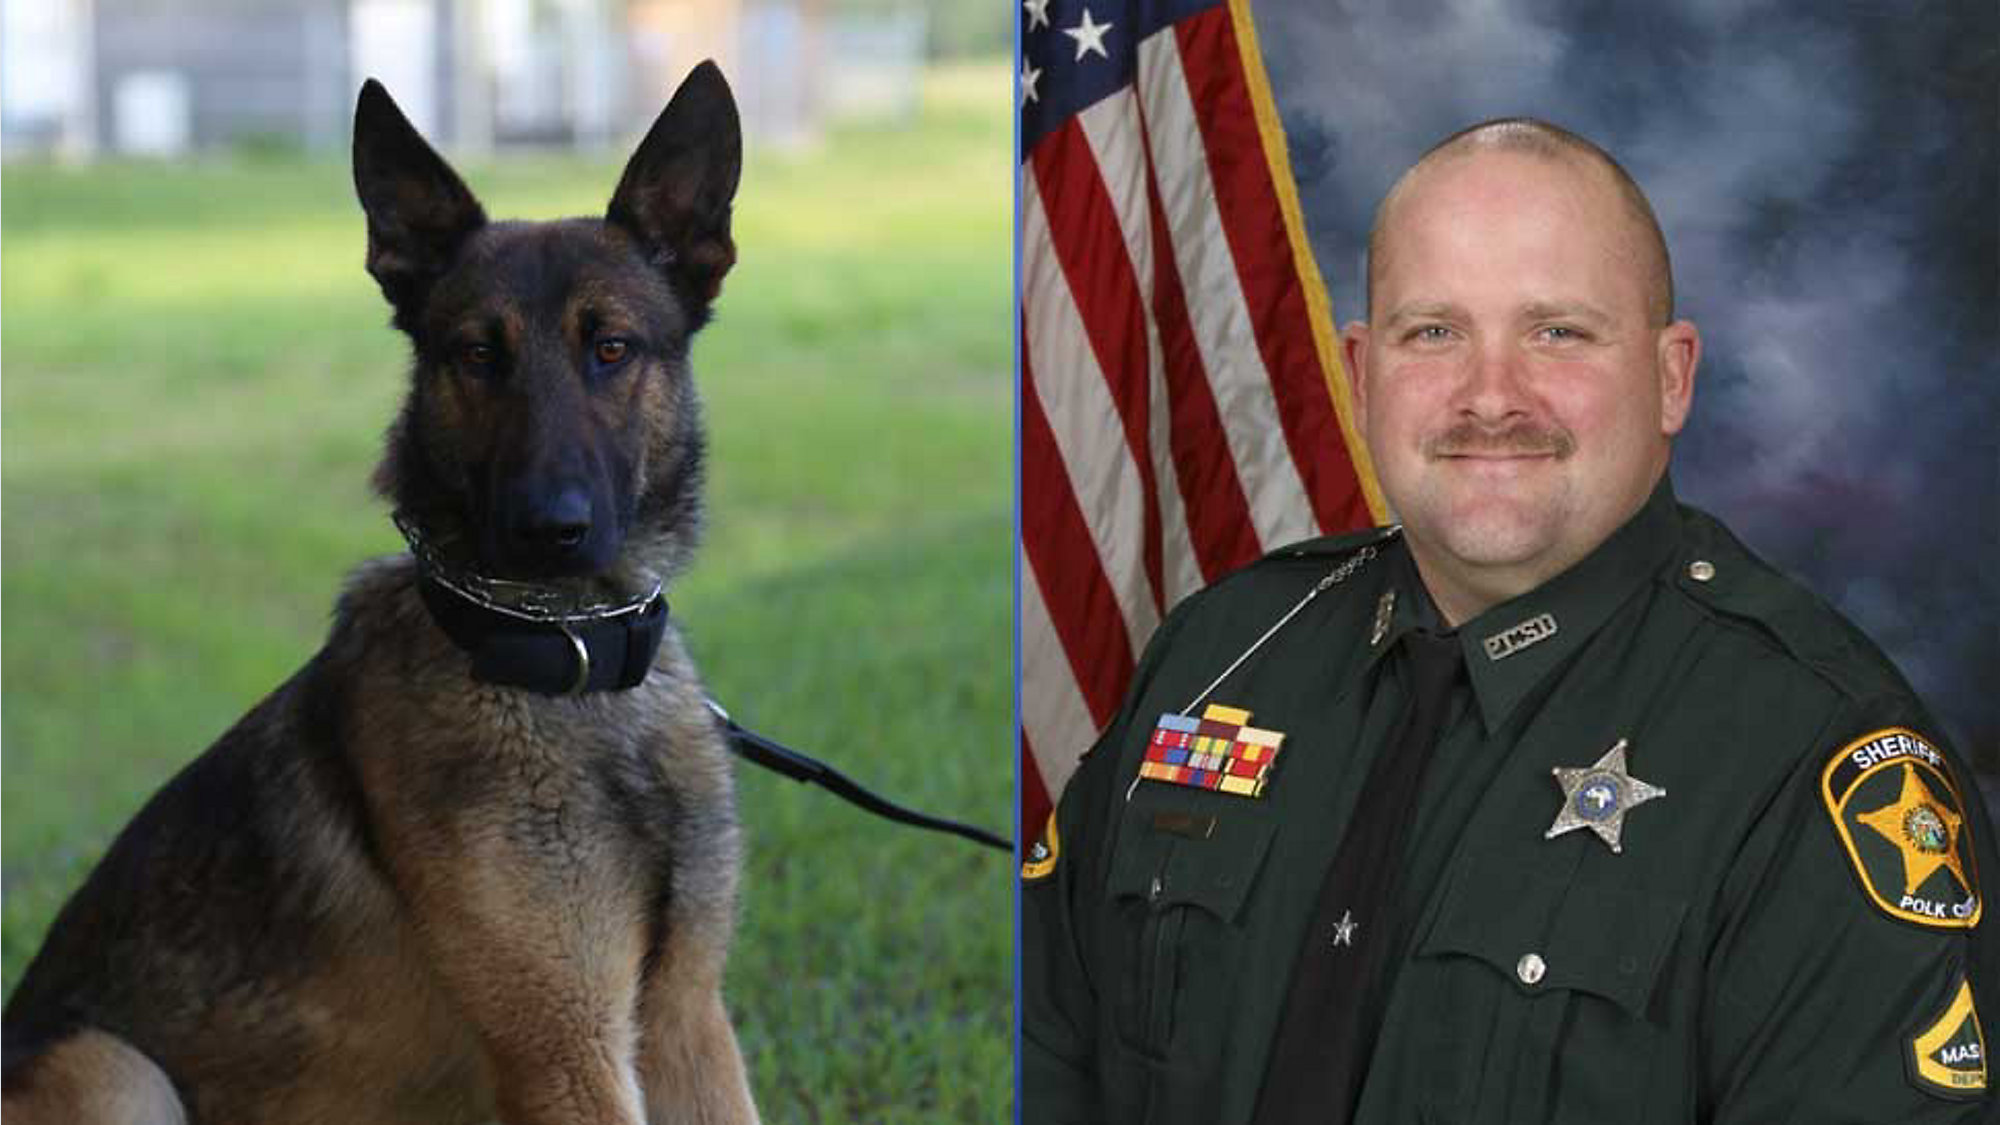 Polk Deputy Severely Injured by Other Deputy's K-9